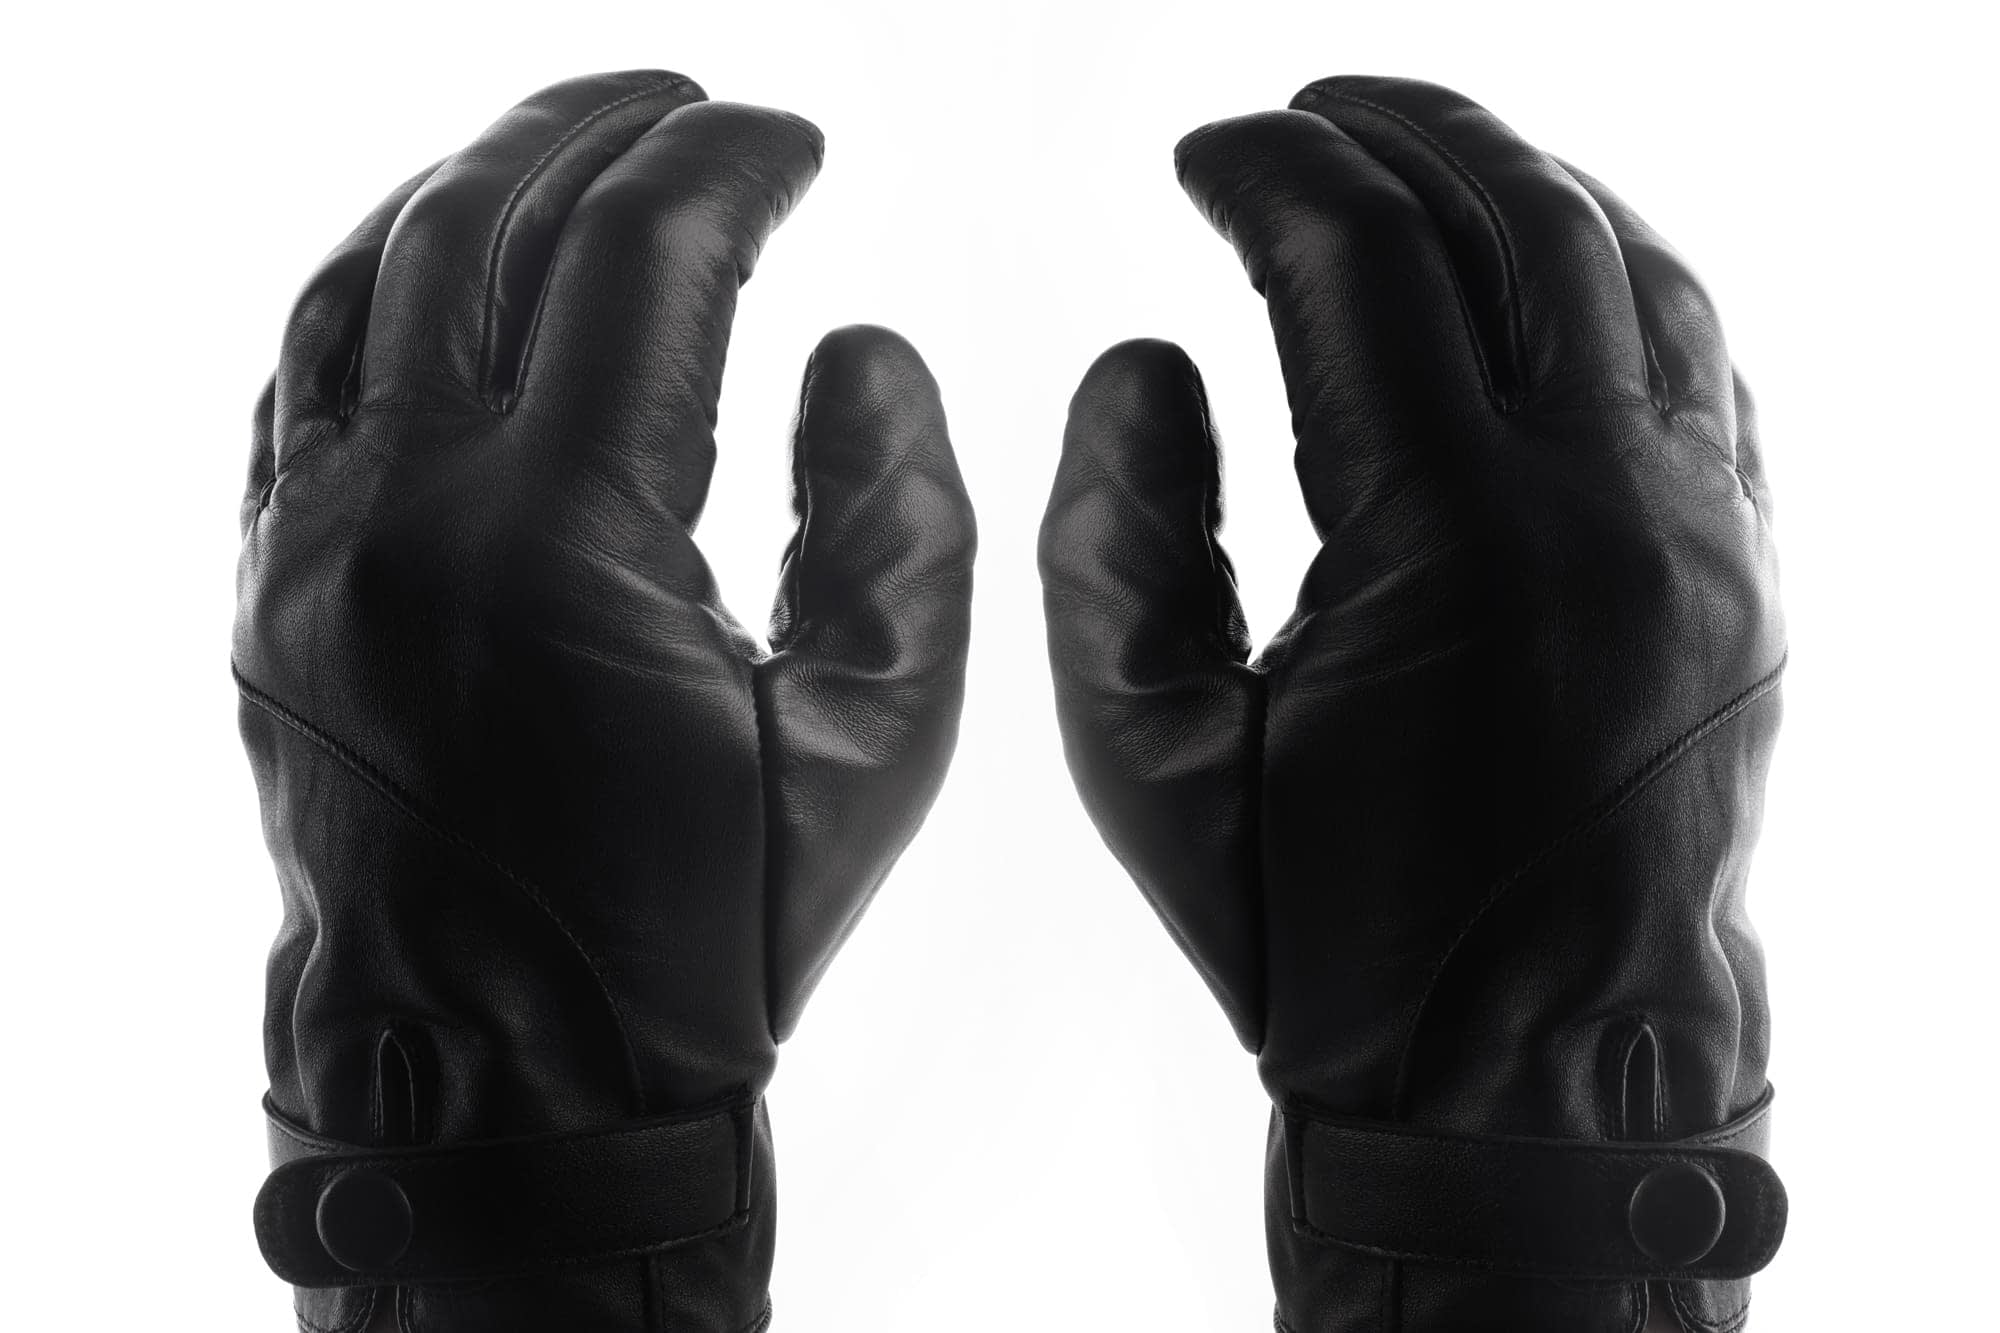 leather touchscreen gloves by mujjo b IMG 0200